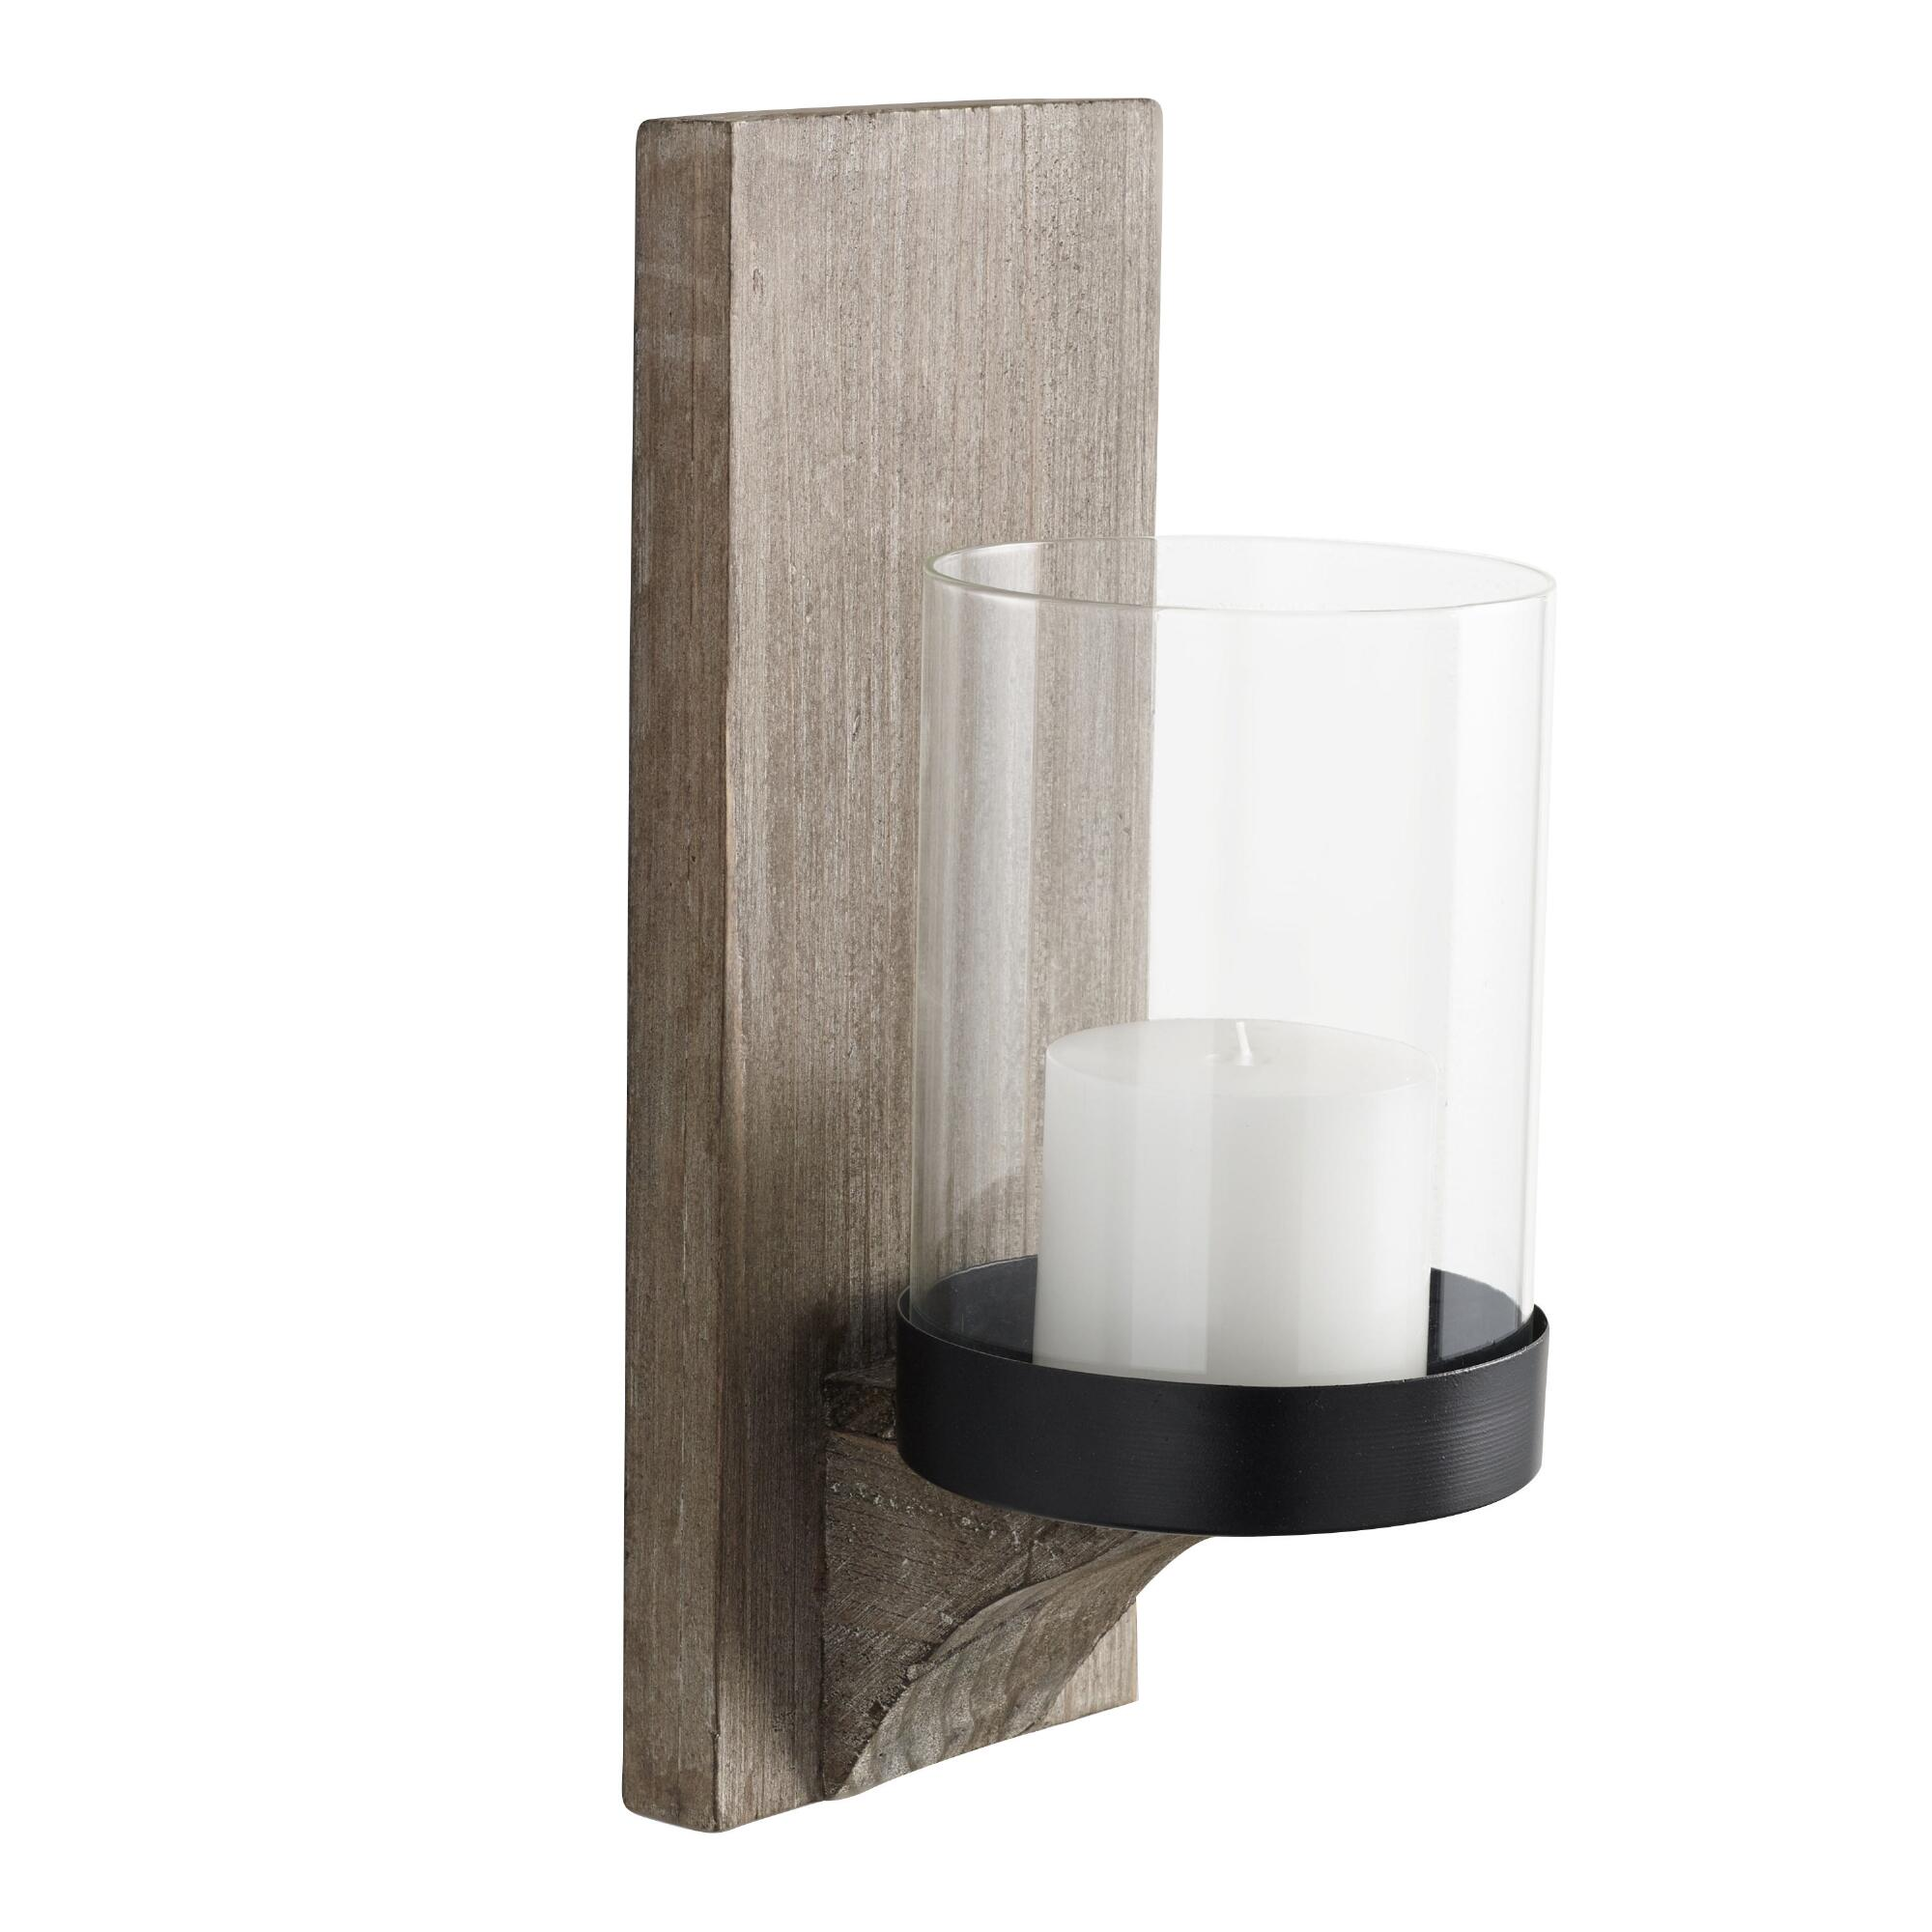 candle holders pillars trays  sconce  world market - rustic wood mason sconce